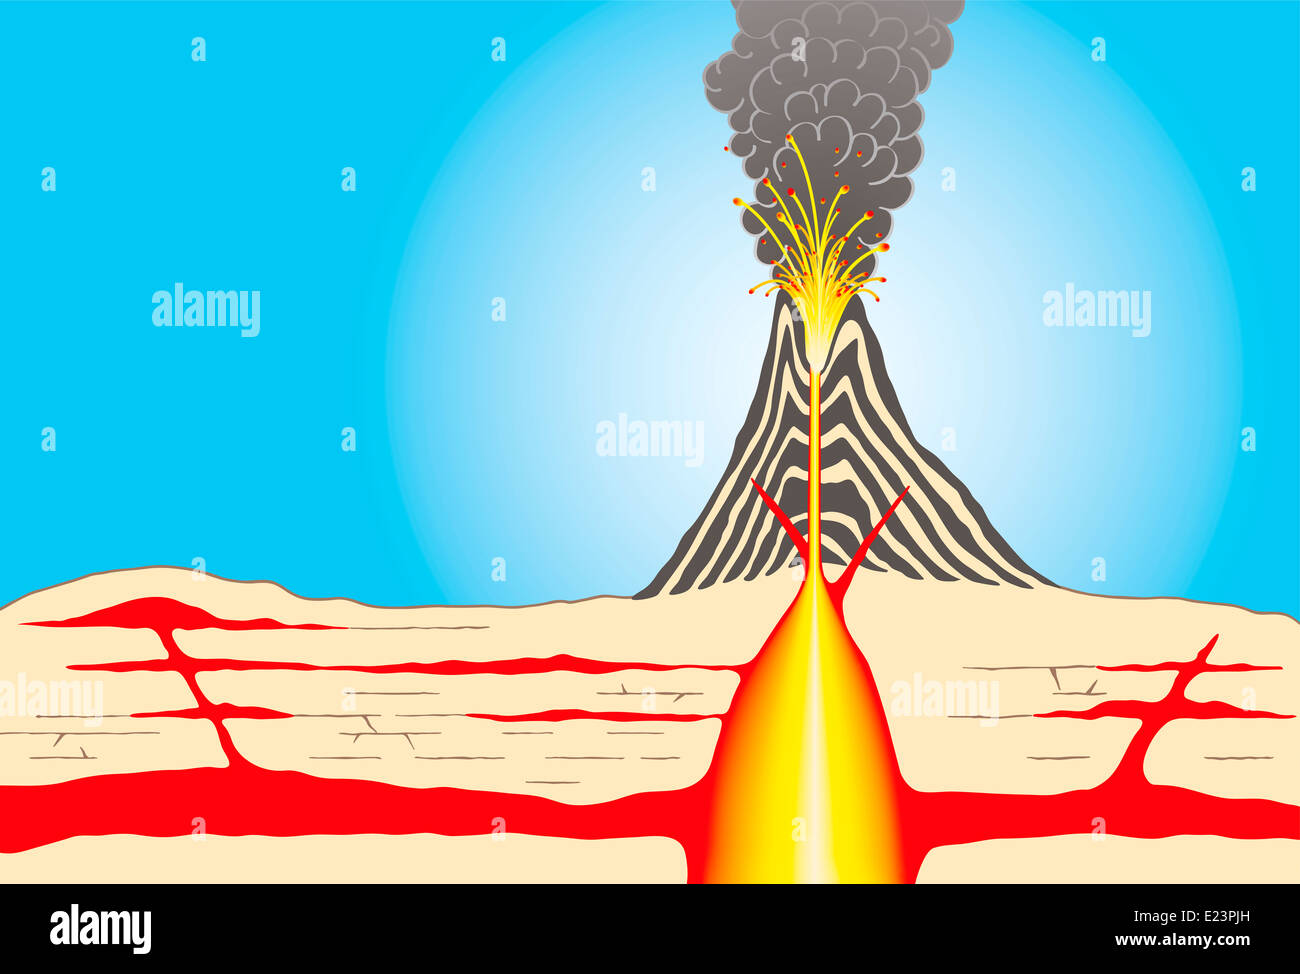 Worksheet About Volcano